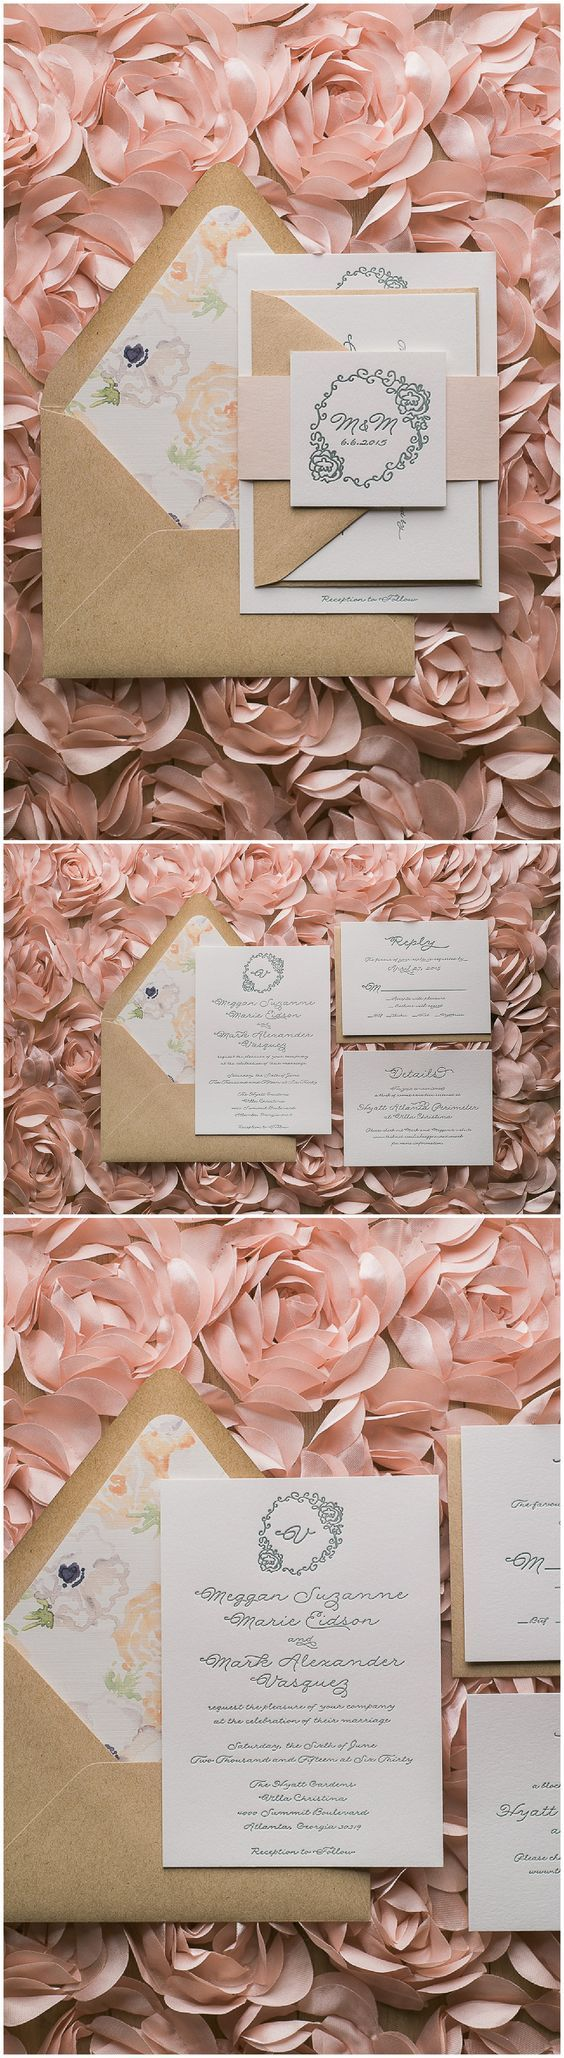 Blush and Kraft Floral Wedding Invitations, Letterpress Wedding Invitations